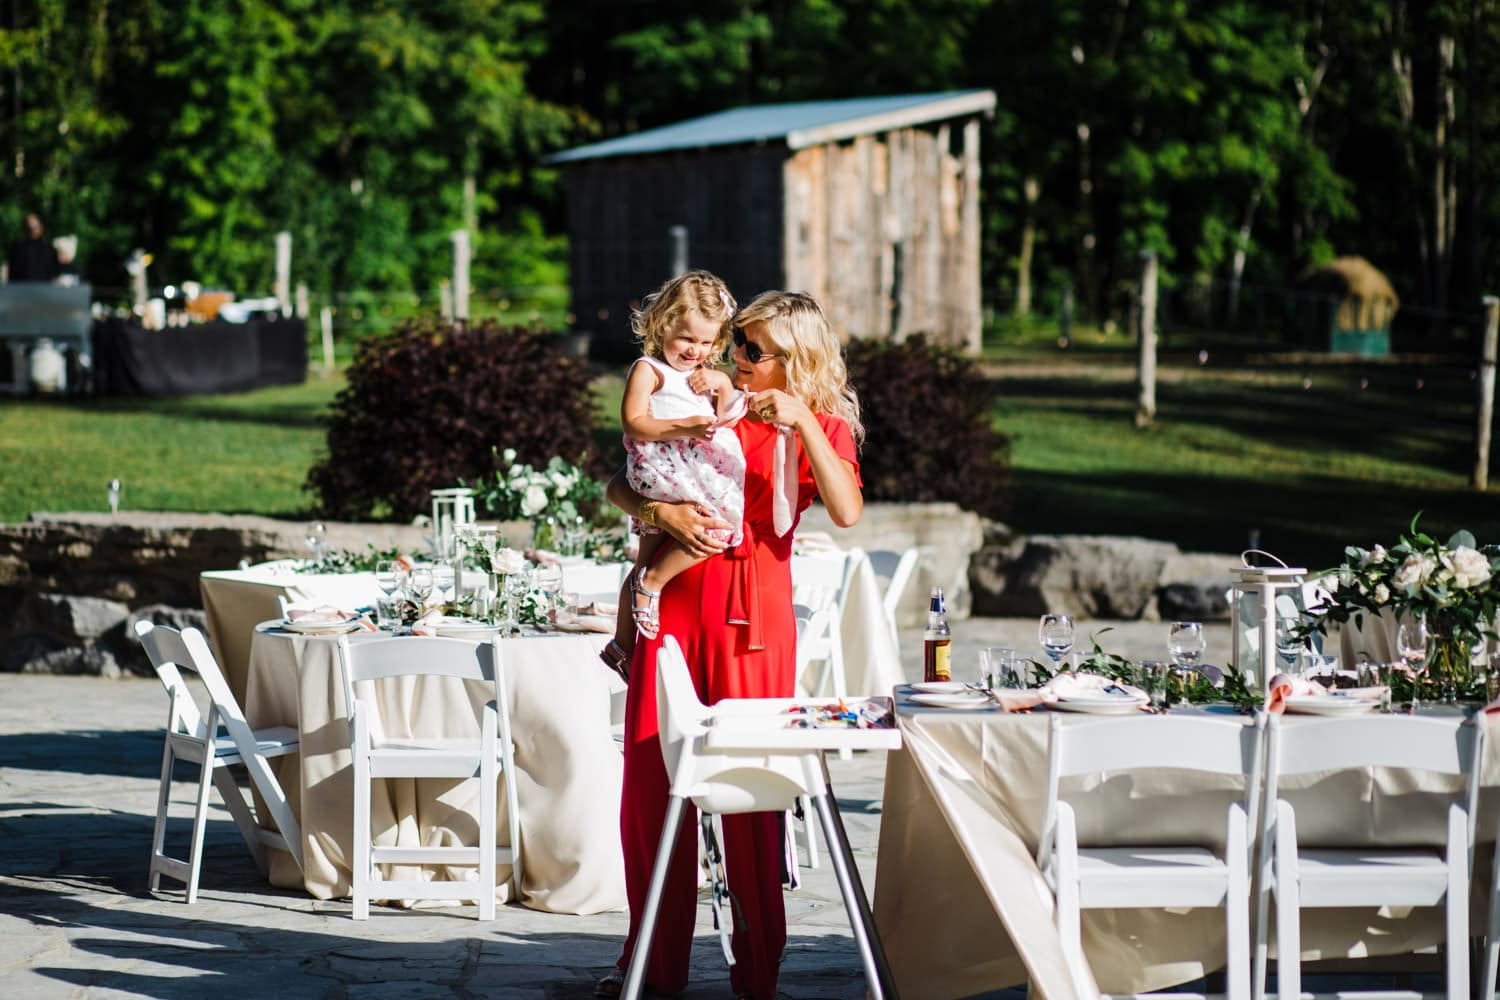 woman and child look at table decor at outdoor wedding